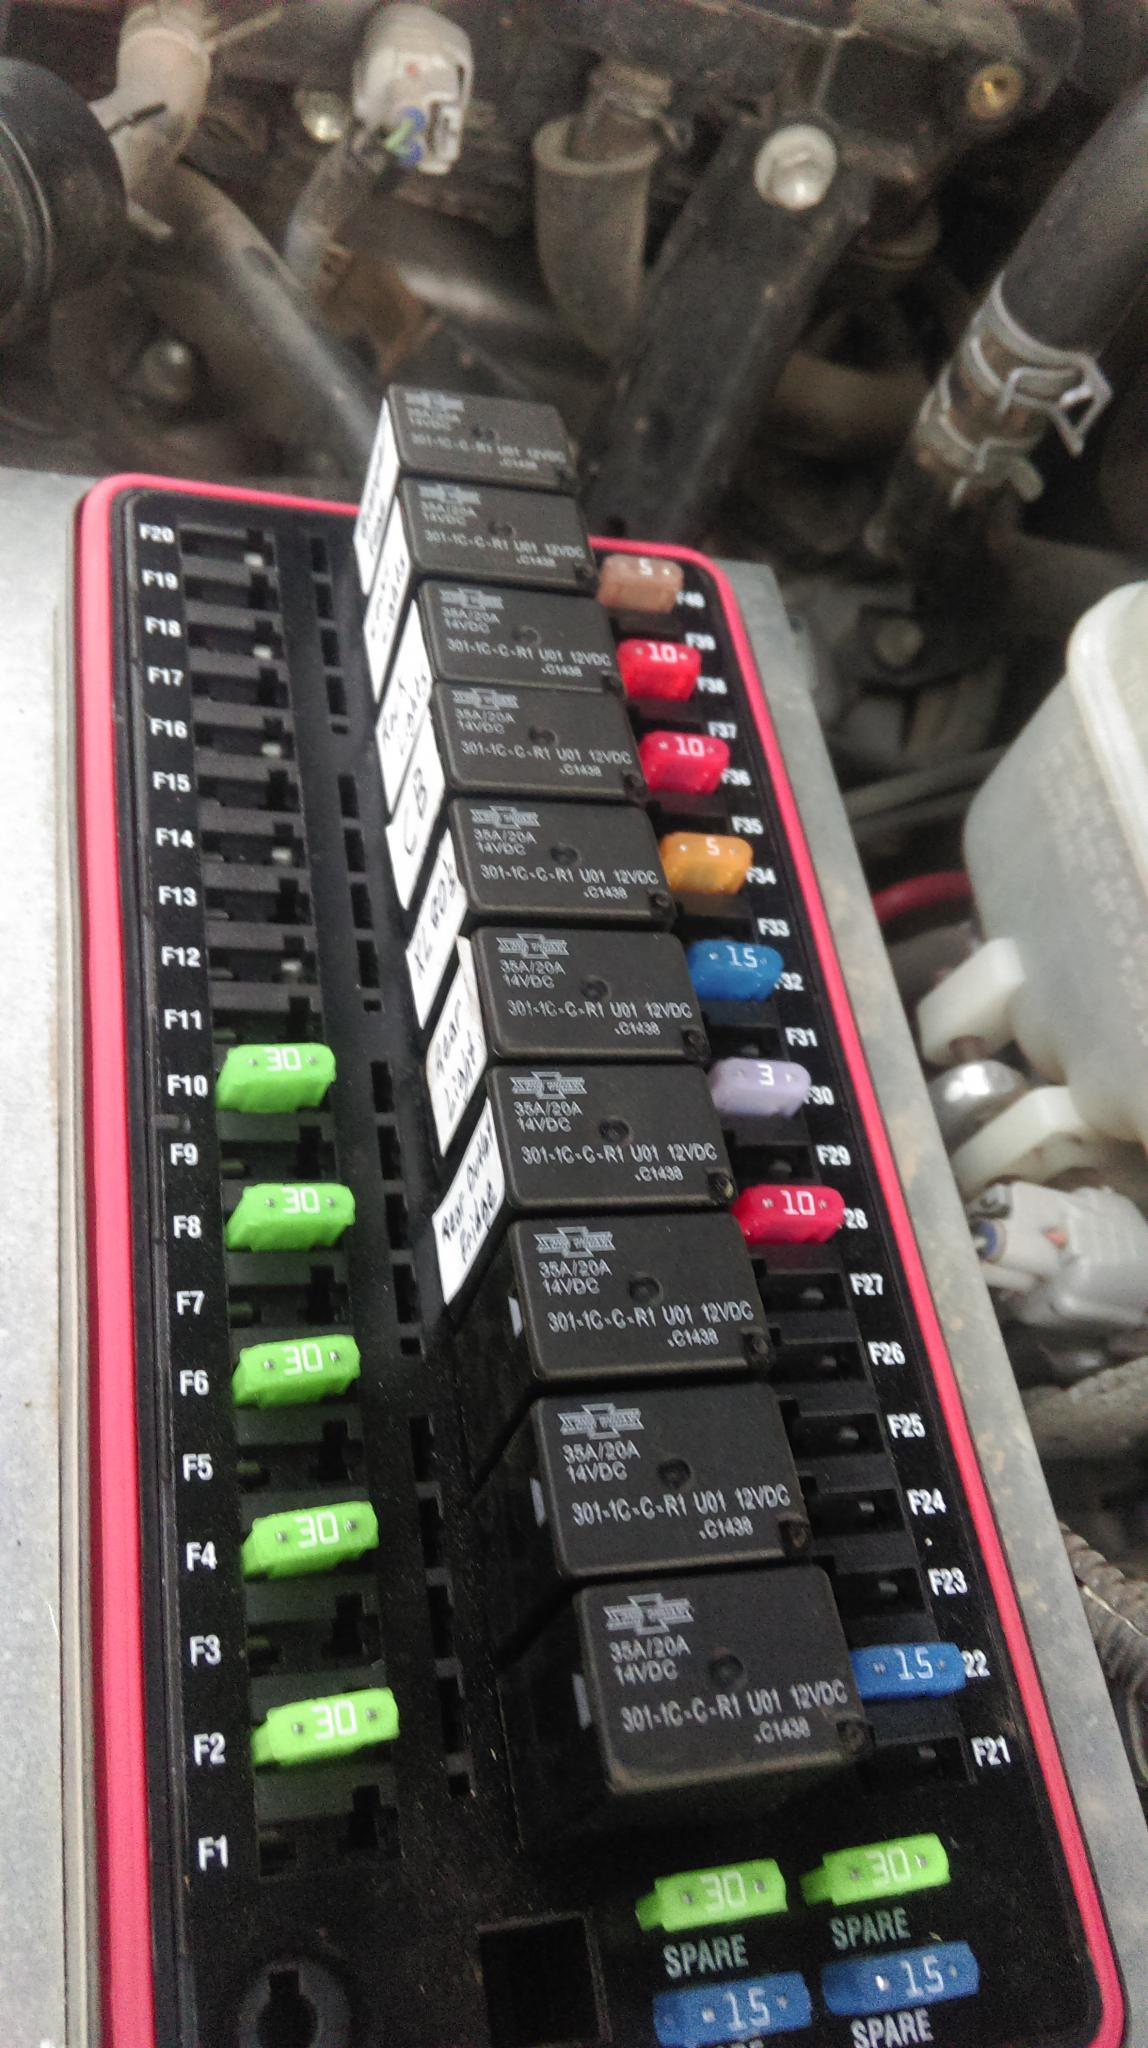 801466d1478797315 show your fuse relay box setup imag2429 show your fuse relay box setup toyota fj cruiser forum rfrm bussmann fuse box & relays at bayanpartner.co